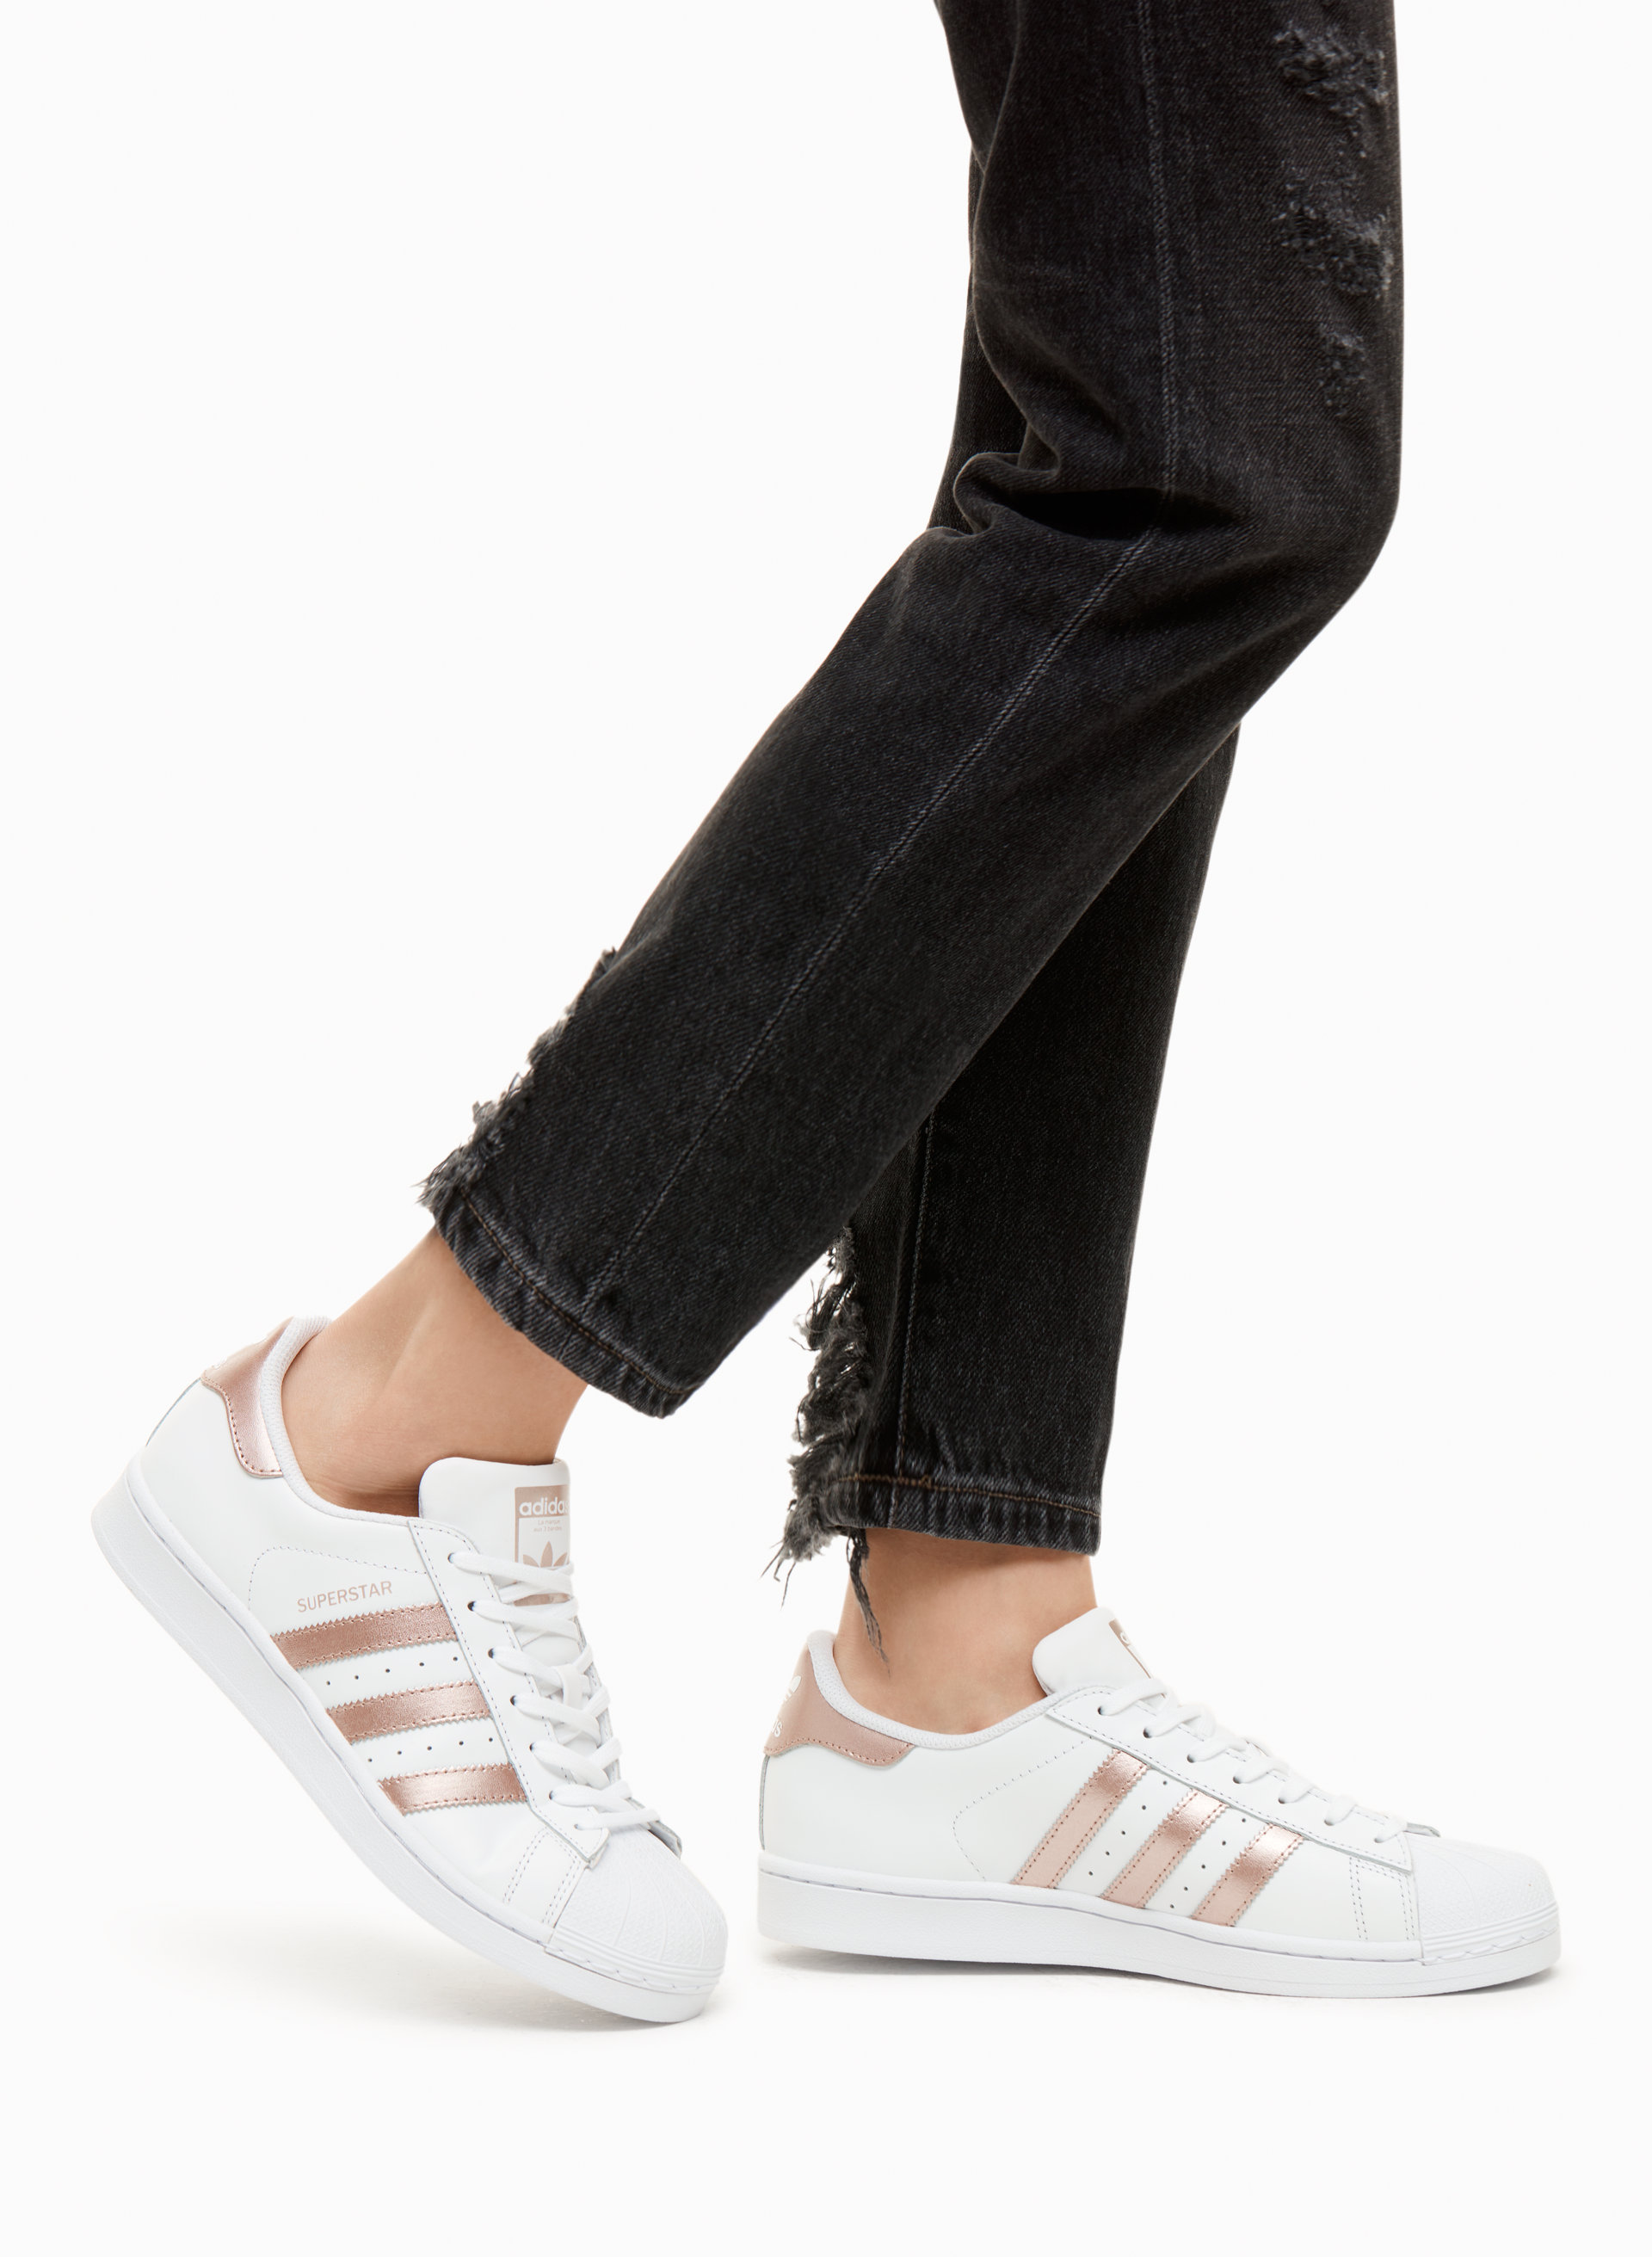 Cheap Adidas superstar black and white gold